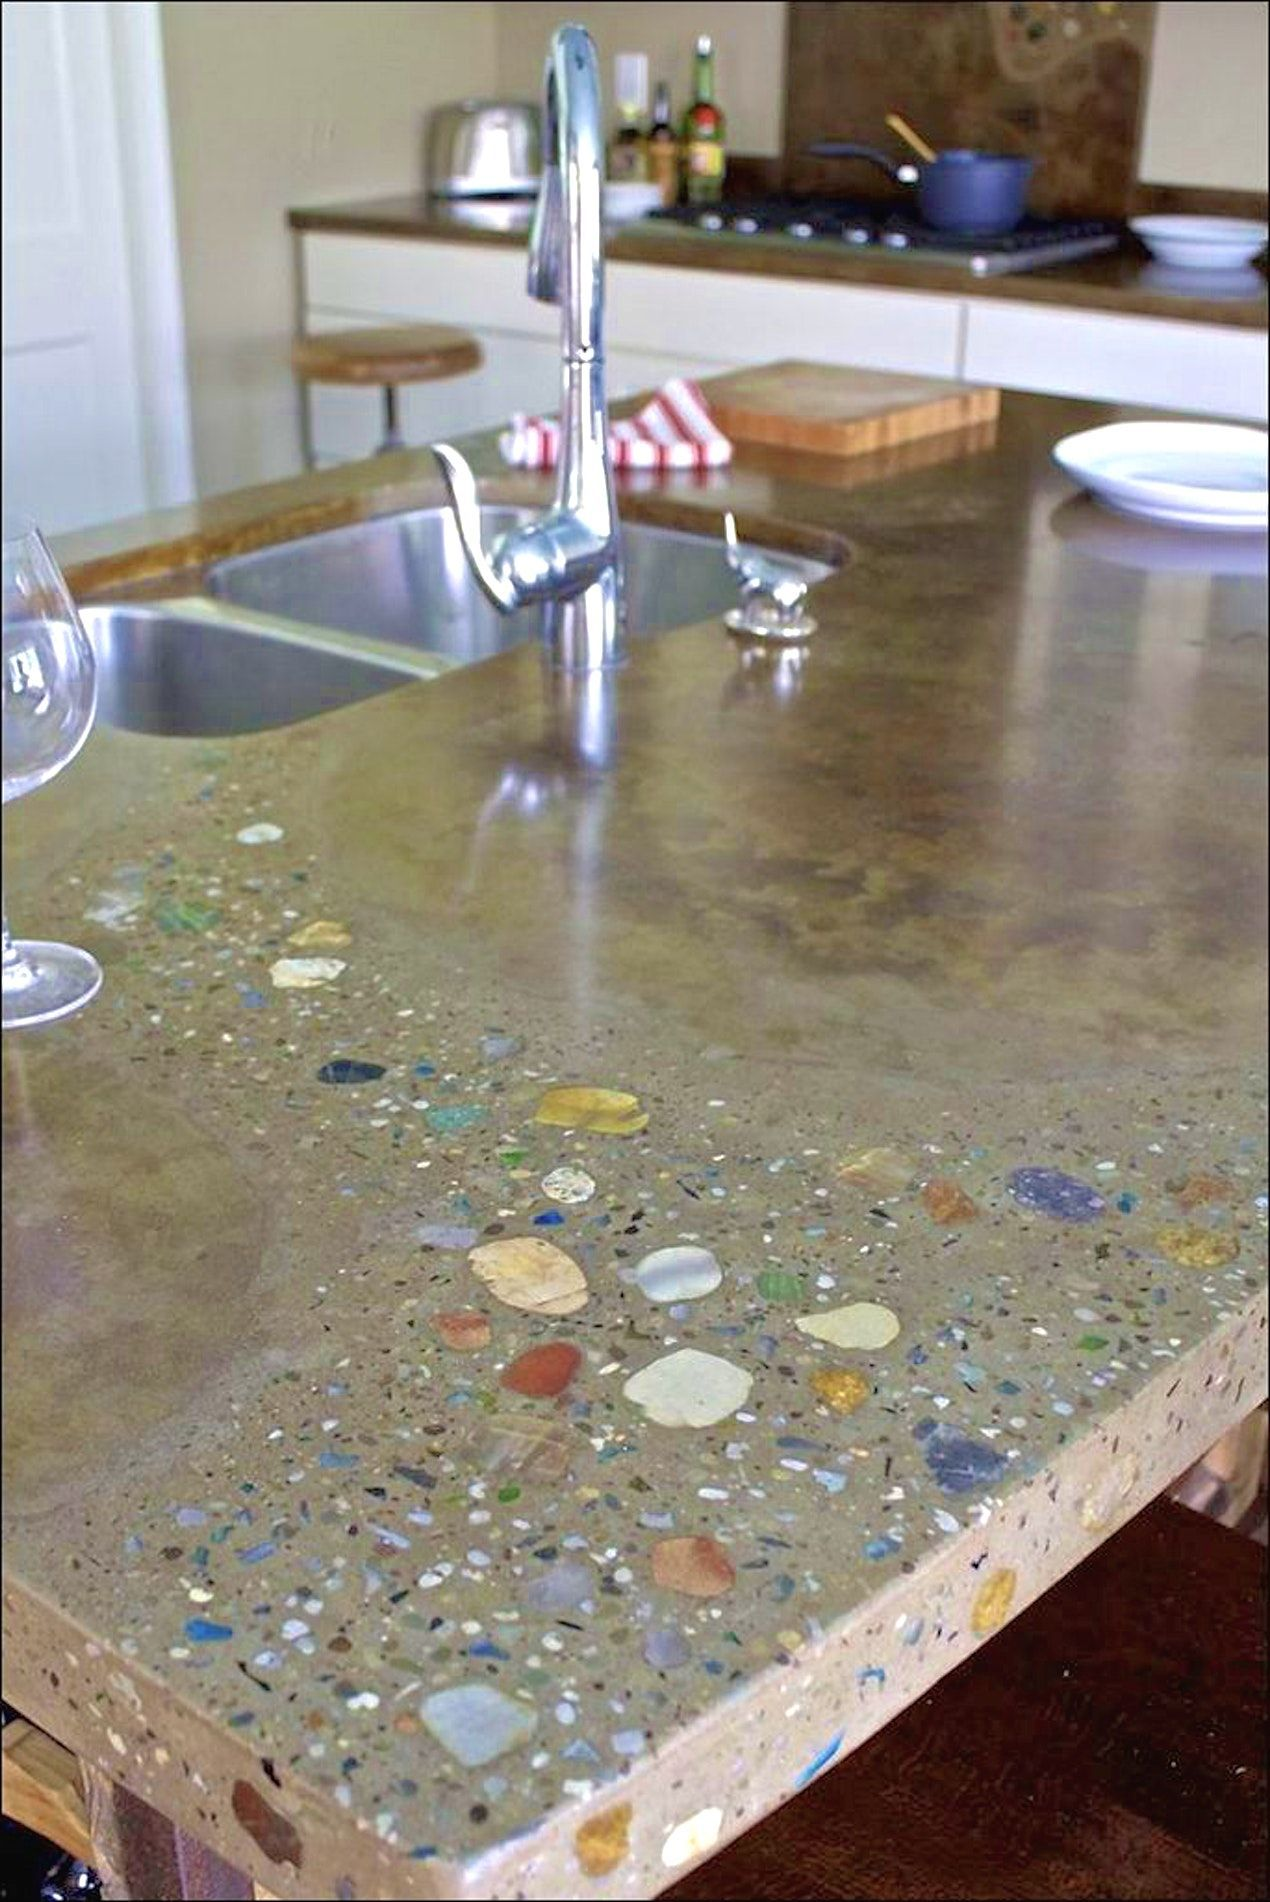 39 Reference Of Diy Crushed Glass Countertops In 2020 Arbeitsflachen Kuche Tresen Diy Glas